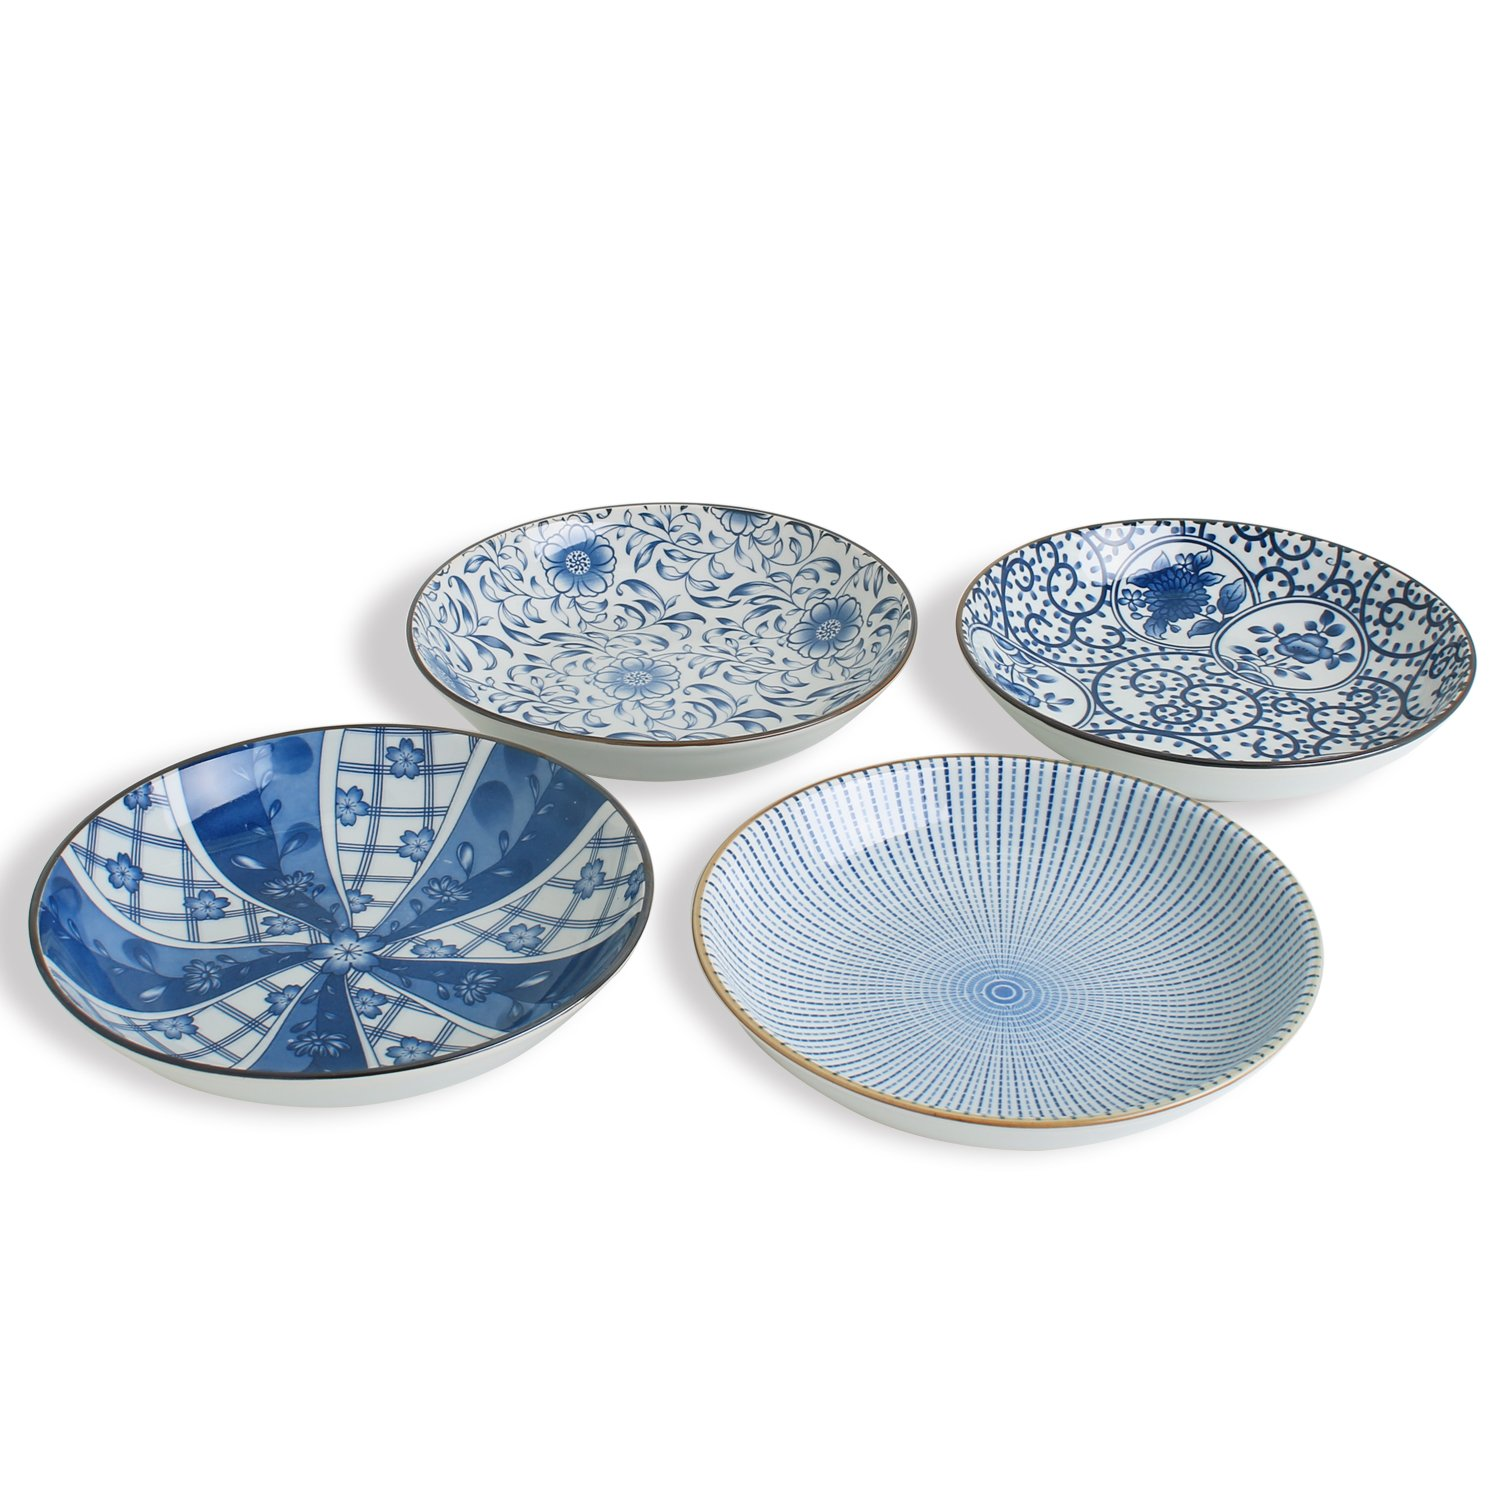 YALONG Porcelain Blue and White Bread and Butter Plate Set, Salad/Dessert Plates Set of 4, 7-inch, Assorted Motifs